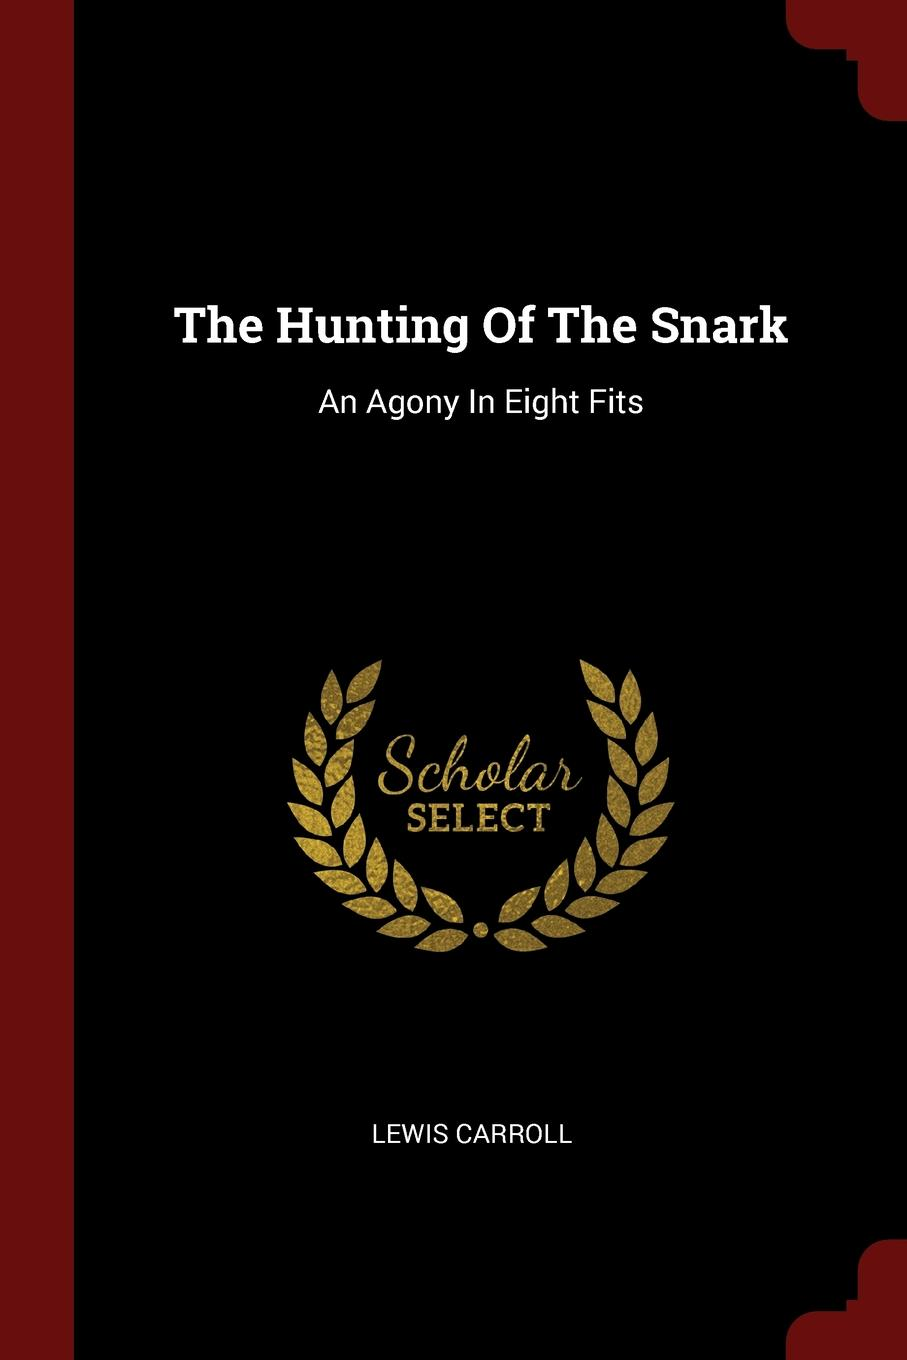 The Hunting Of The Snark. An Agony In Eight Fits